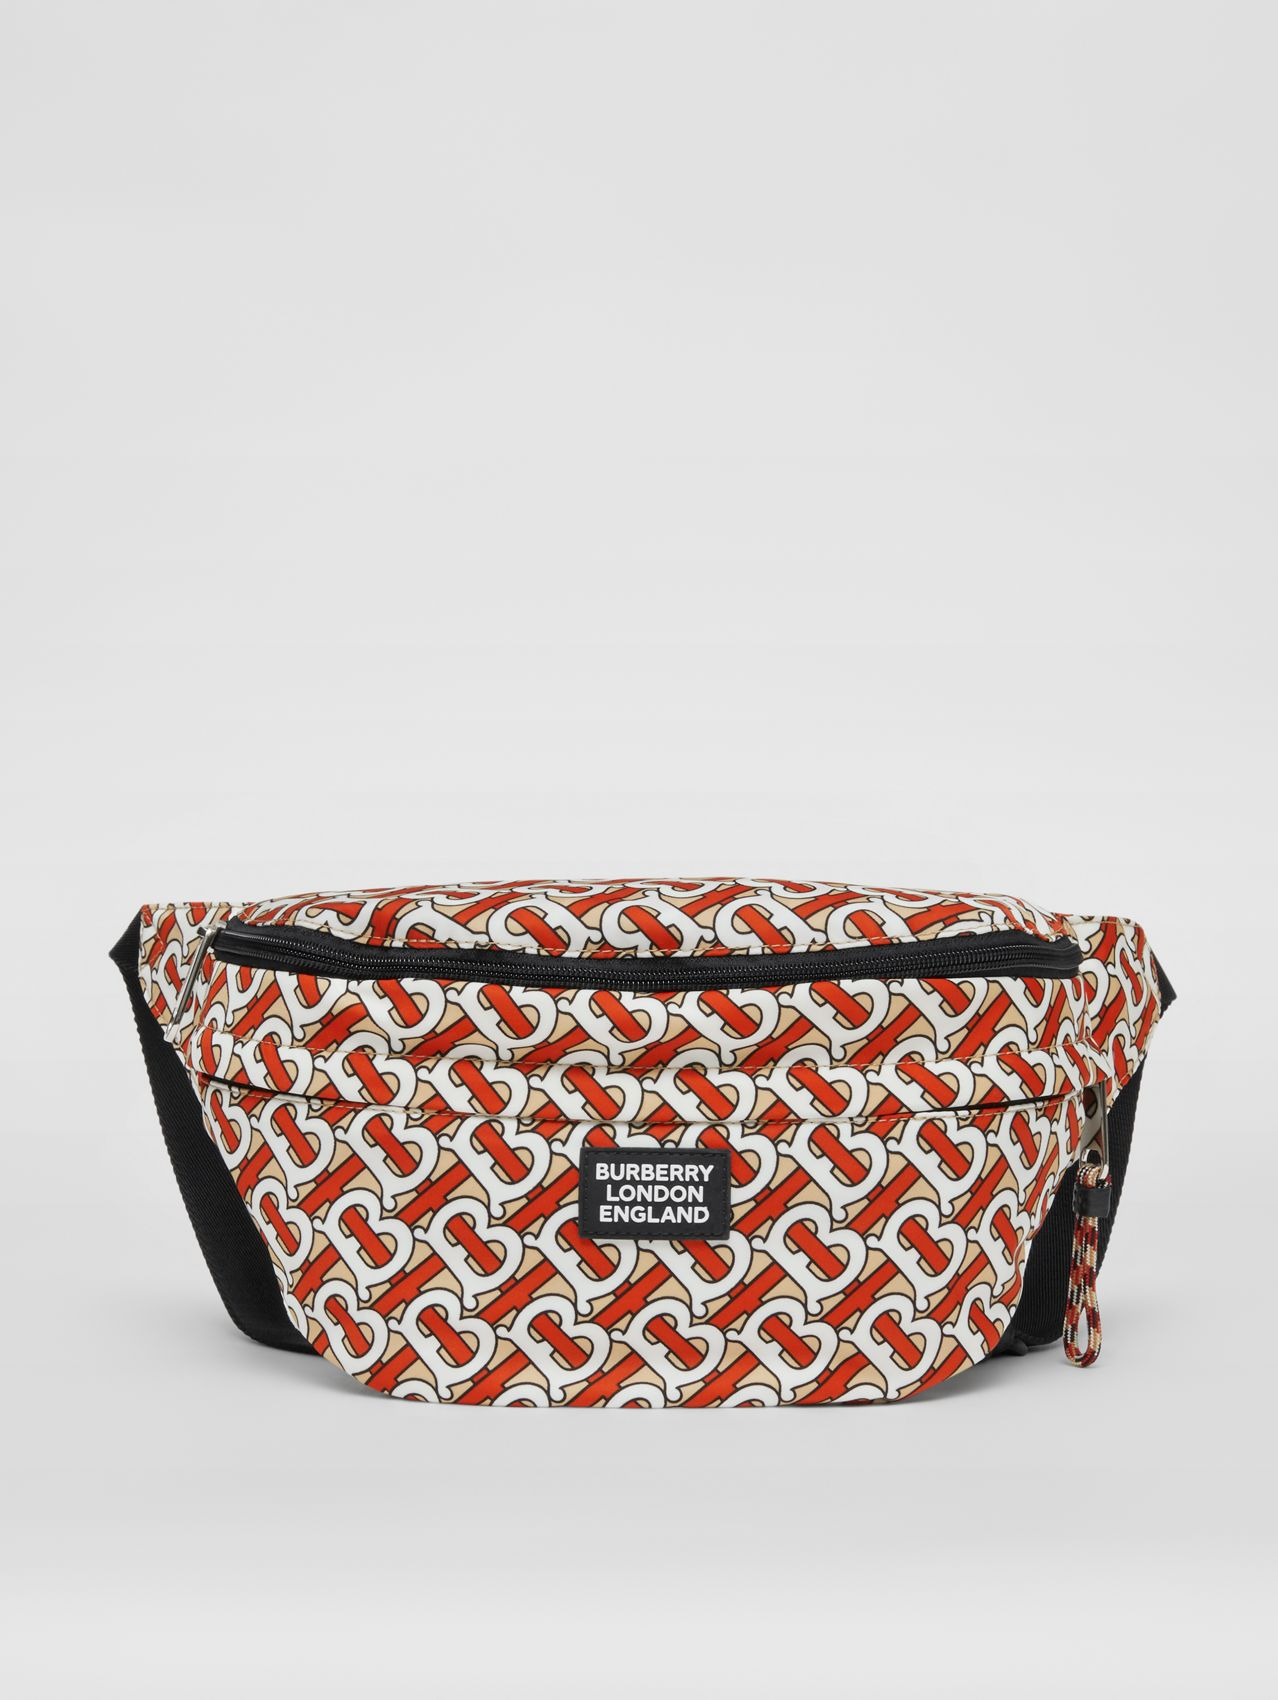 Monogram Print Convertible Bum Bag in Vermilion Red